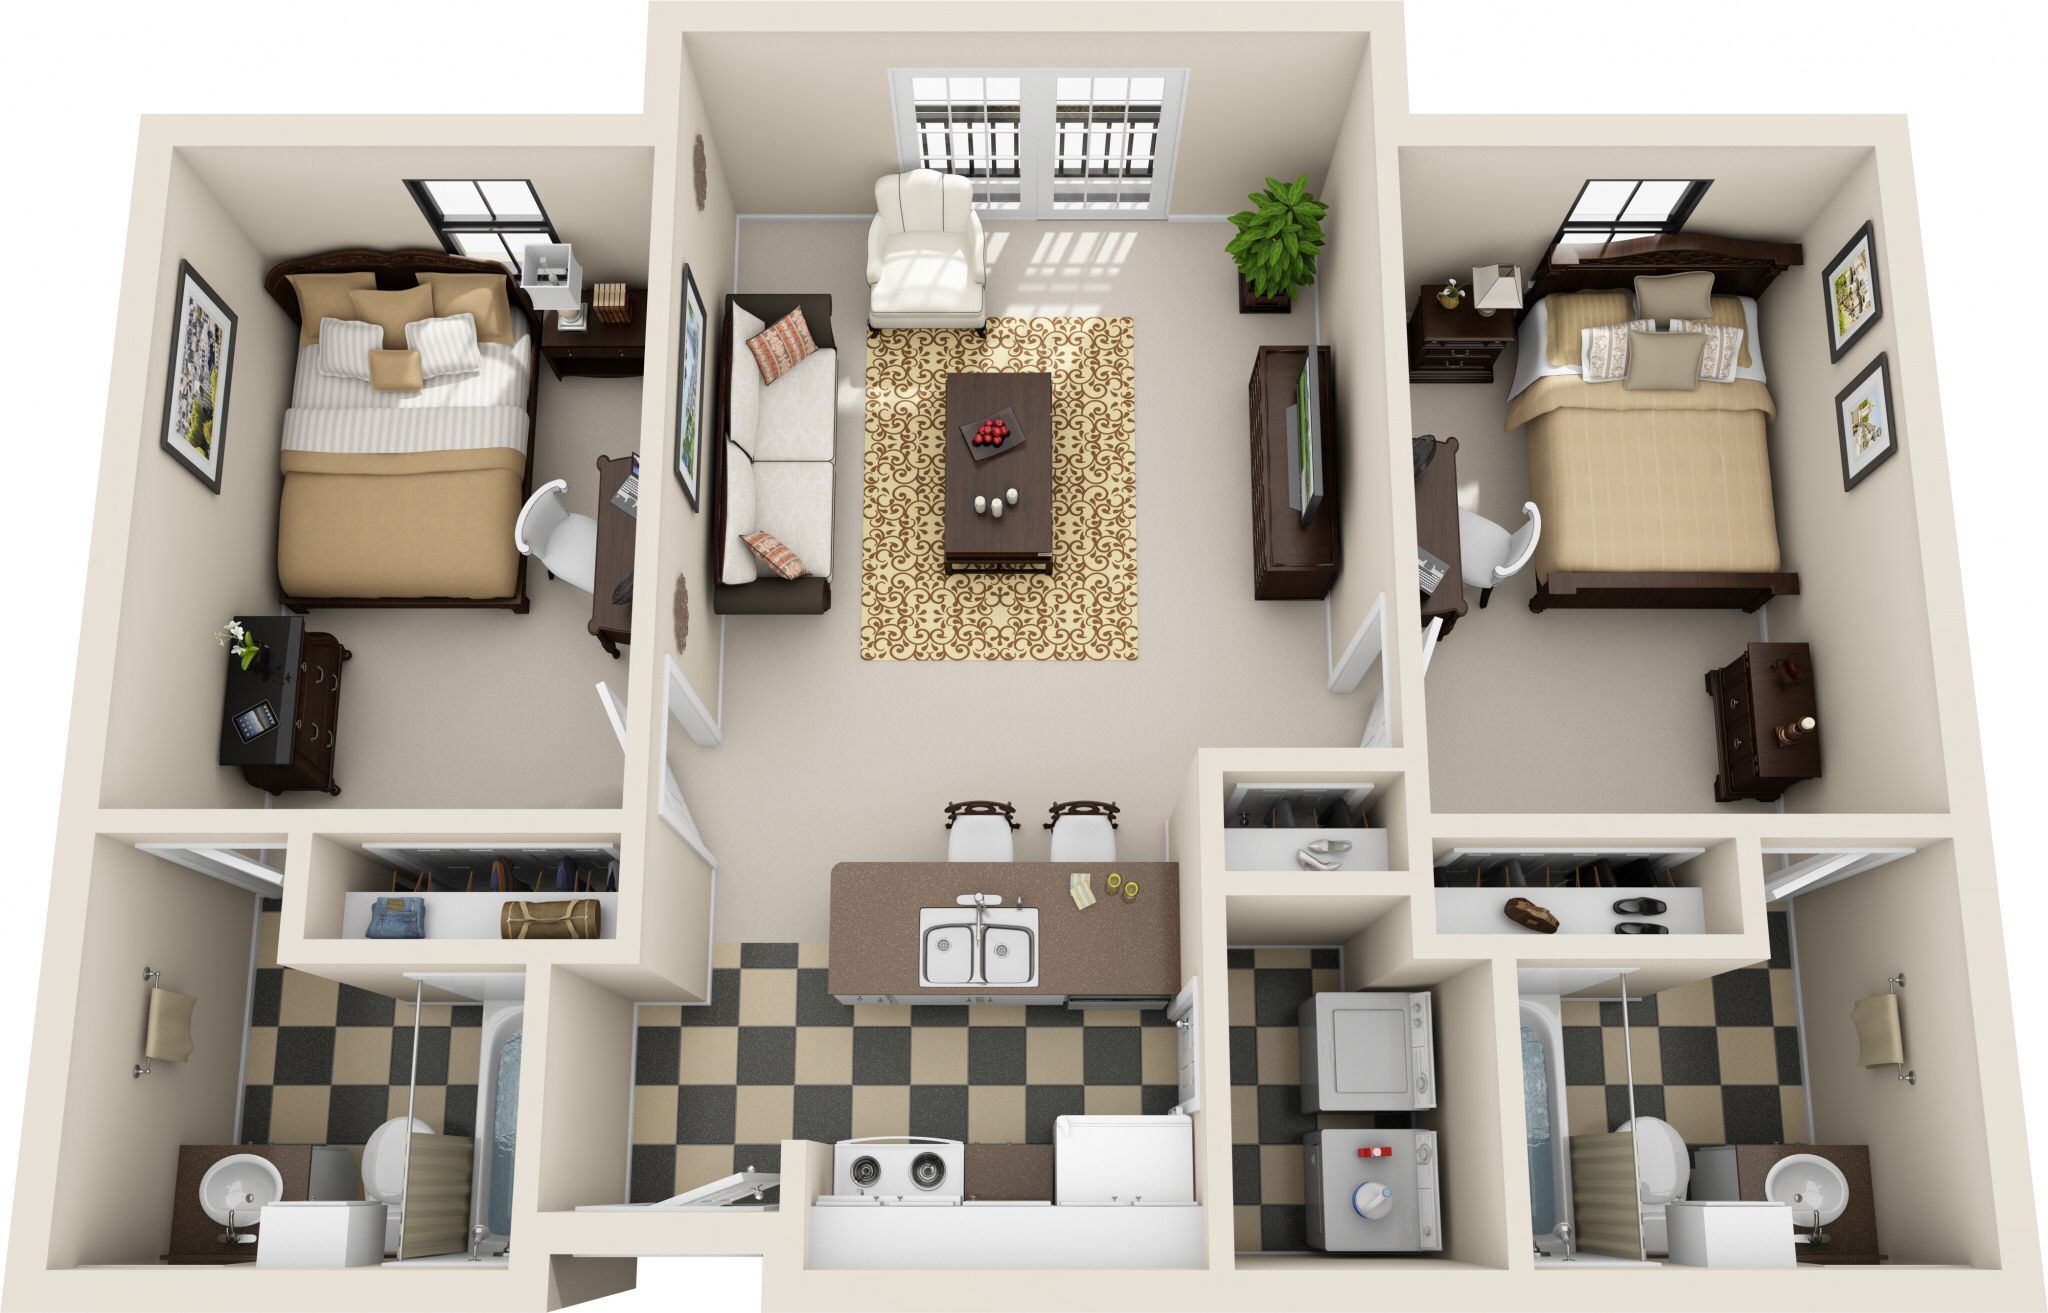 Pin By Janiia On Future 2 Bedroom Apartment Bedroom House Plans Renting A House